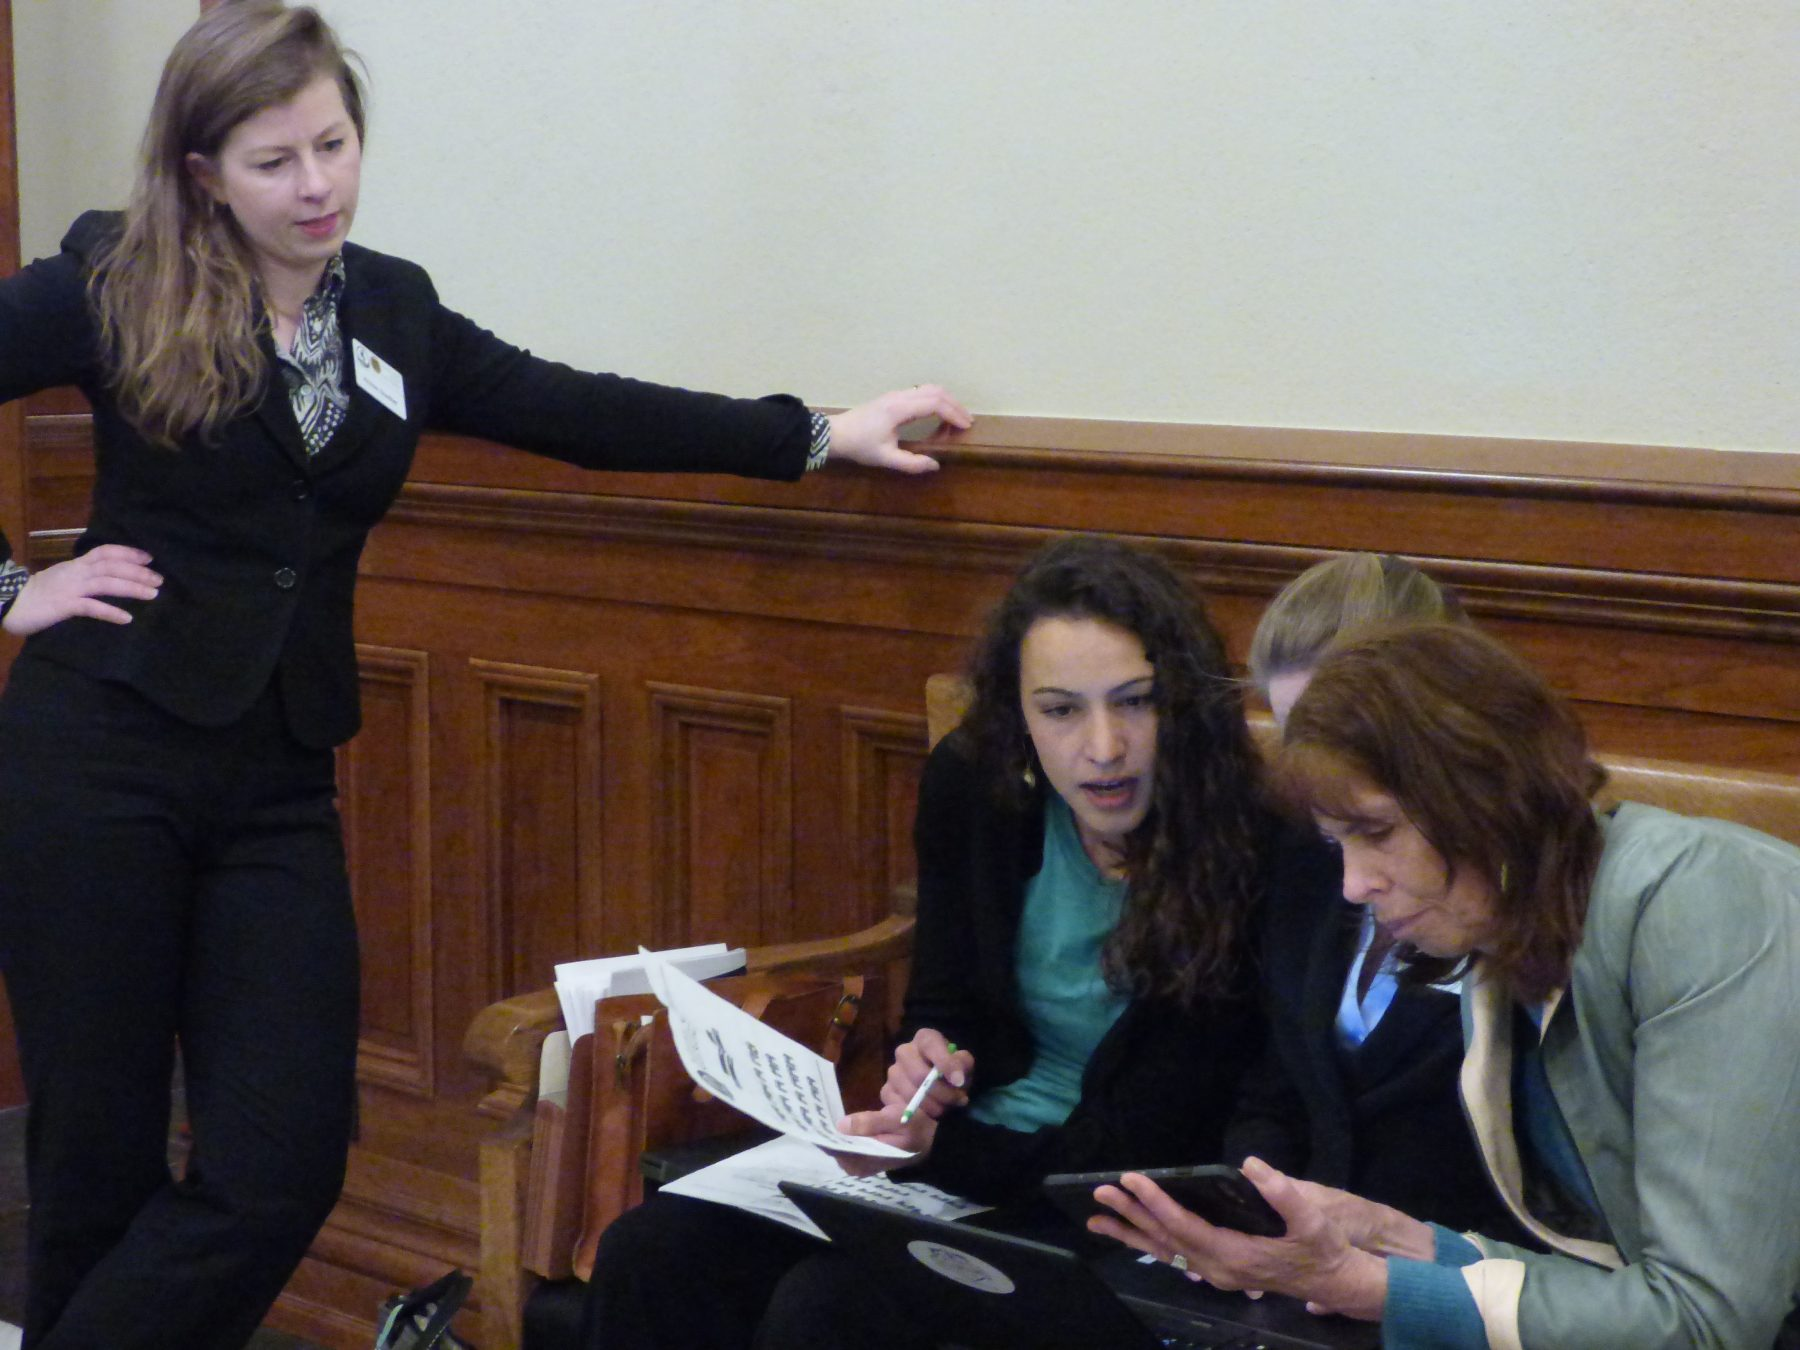 Intern Diary: An incredible week of learning at the Wyoming Legislature